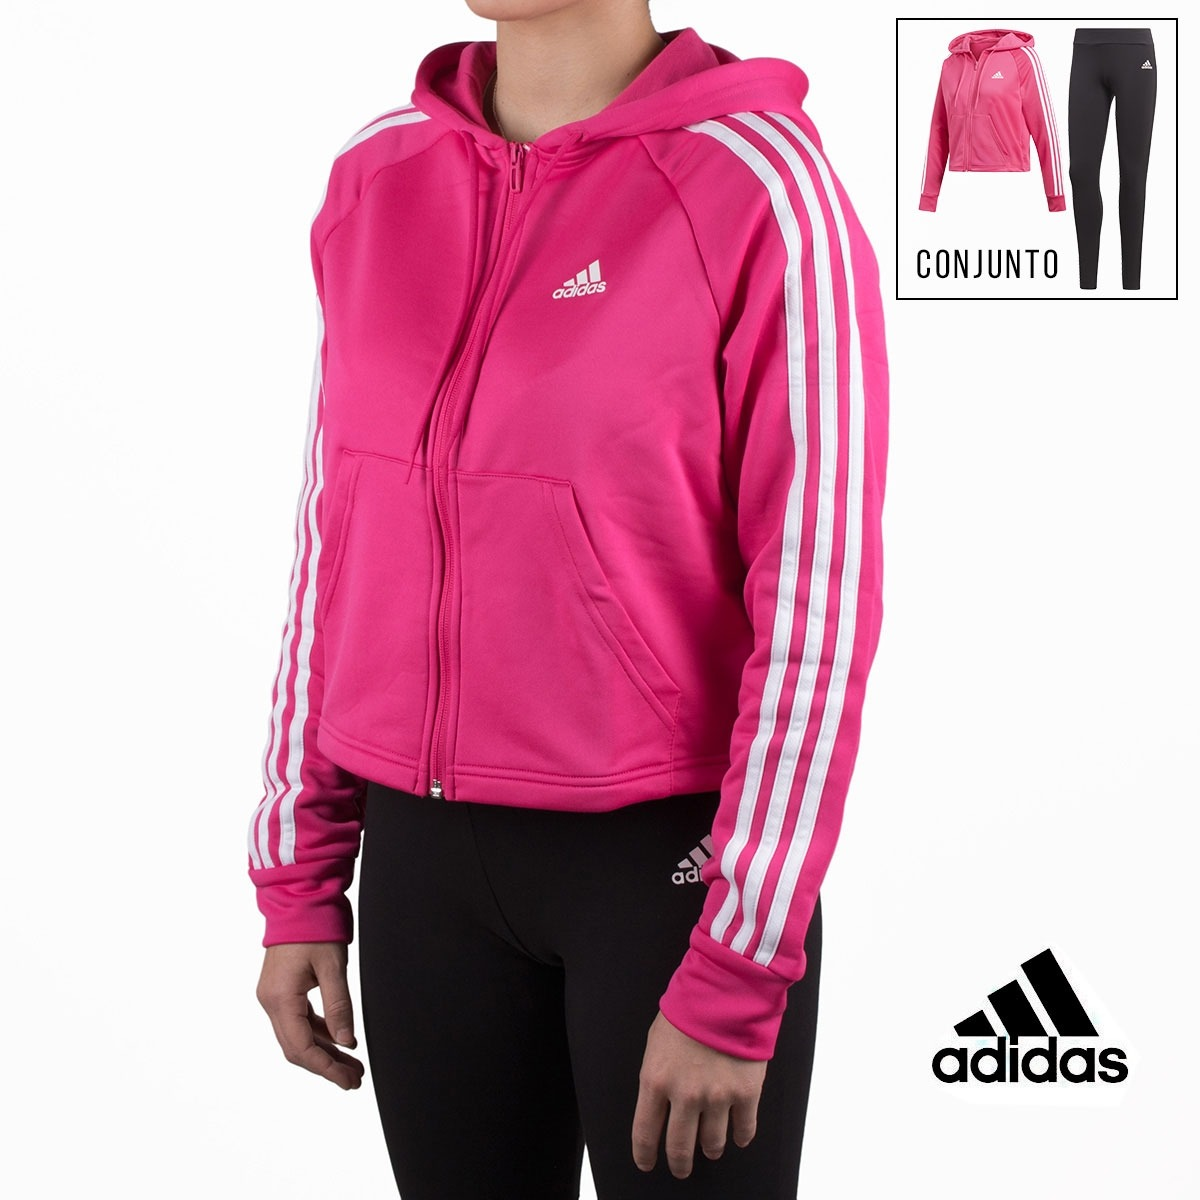 Adidas chándal conjunto Hoodie and Tights rosa y negro mujer